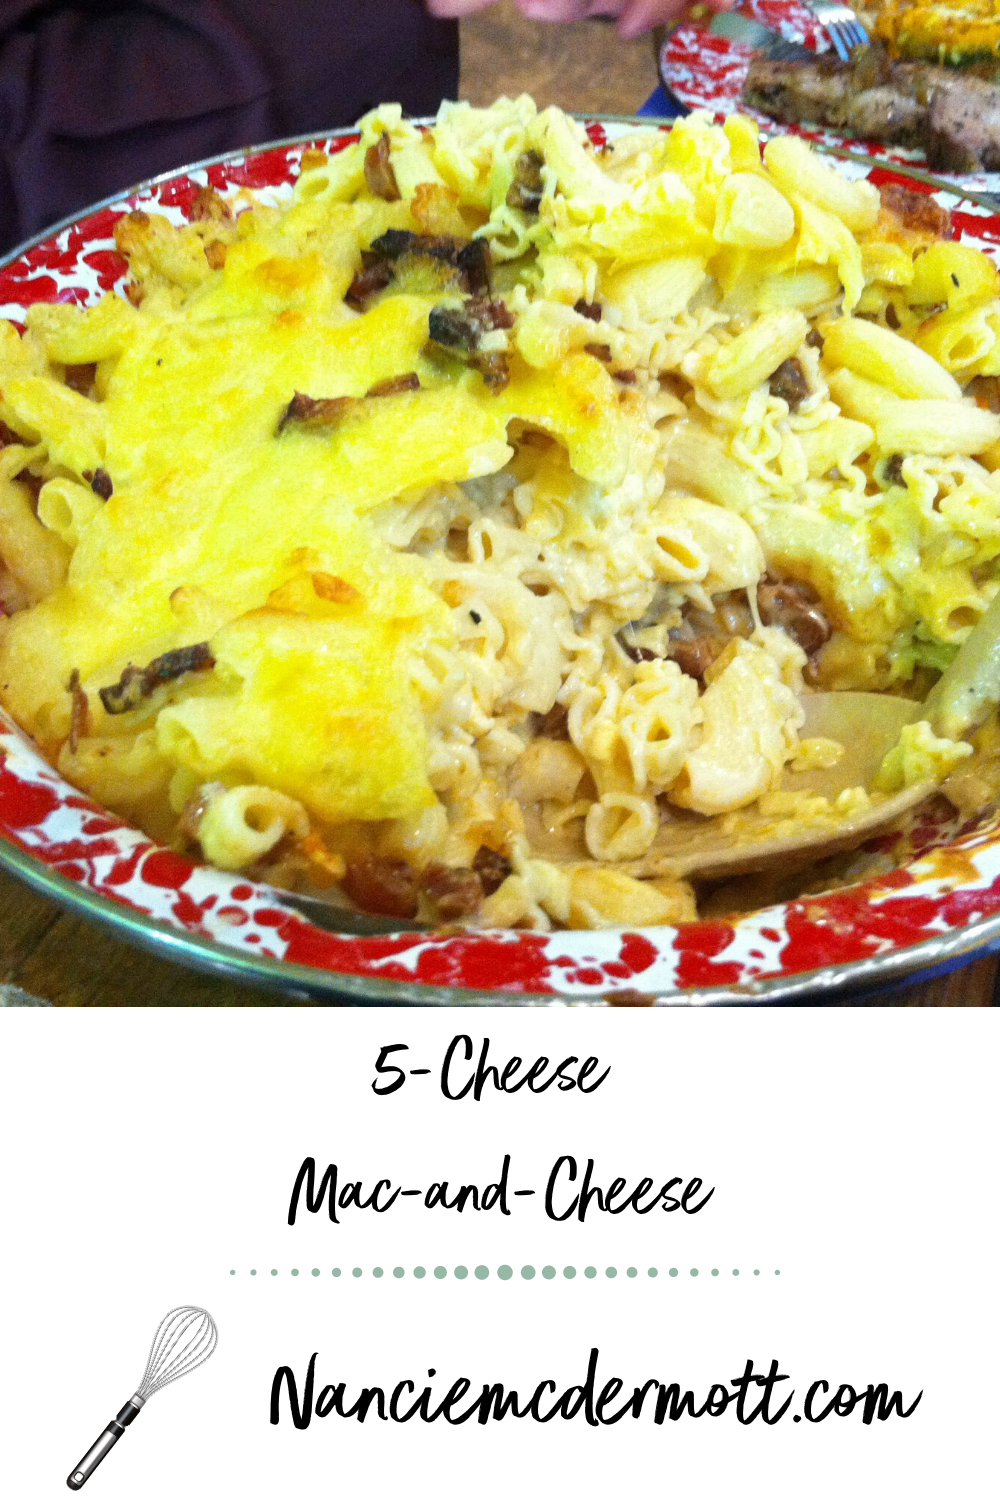 5-Cheese Mac-and-Cheese